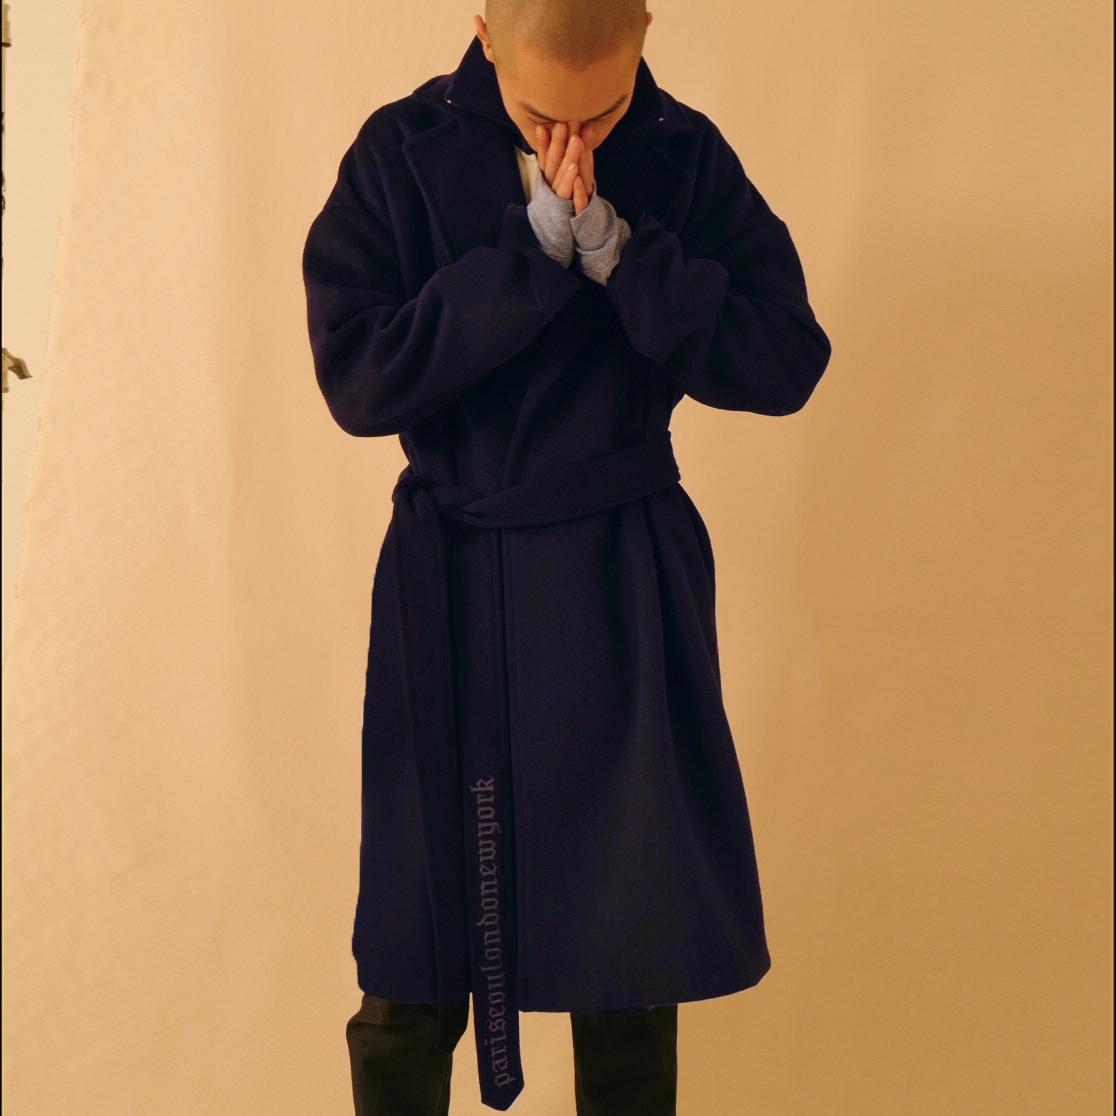 psln robe coat navy